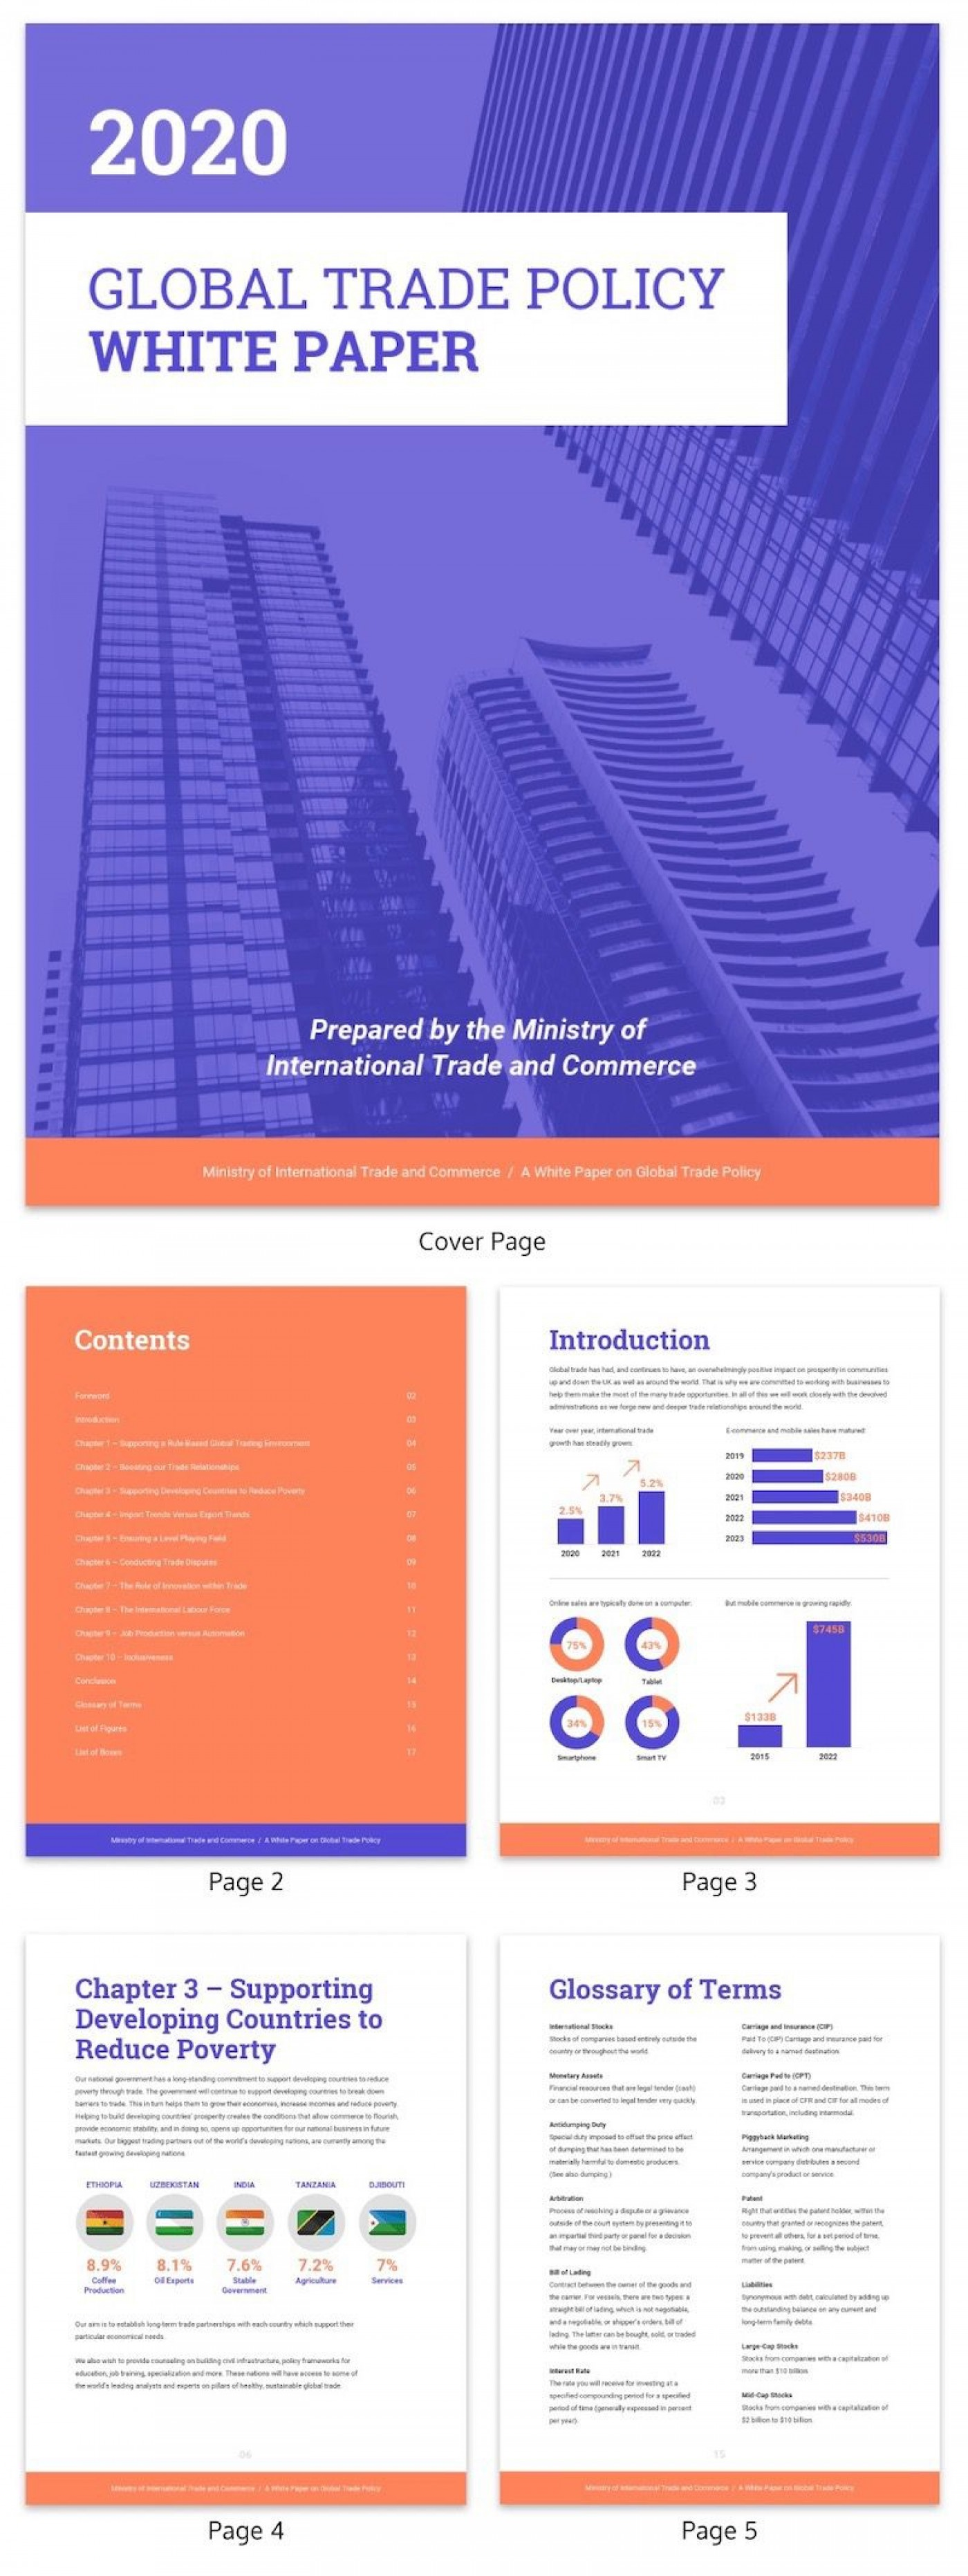 005 Unusual Technical White Paper Template Sample  Word Doc Free Download 20131400